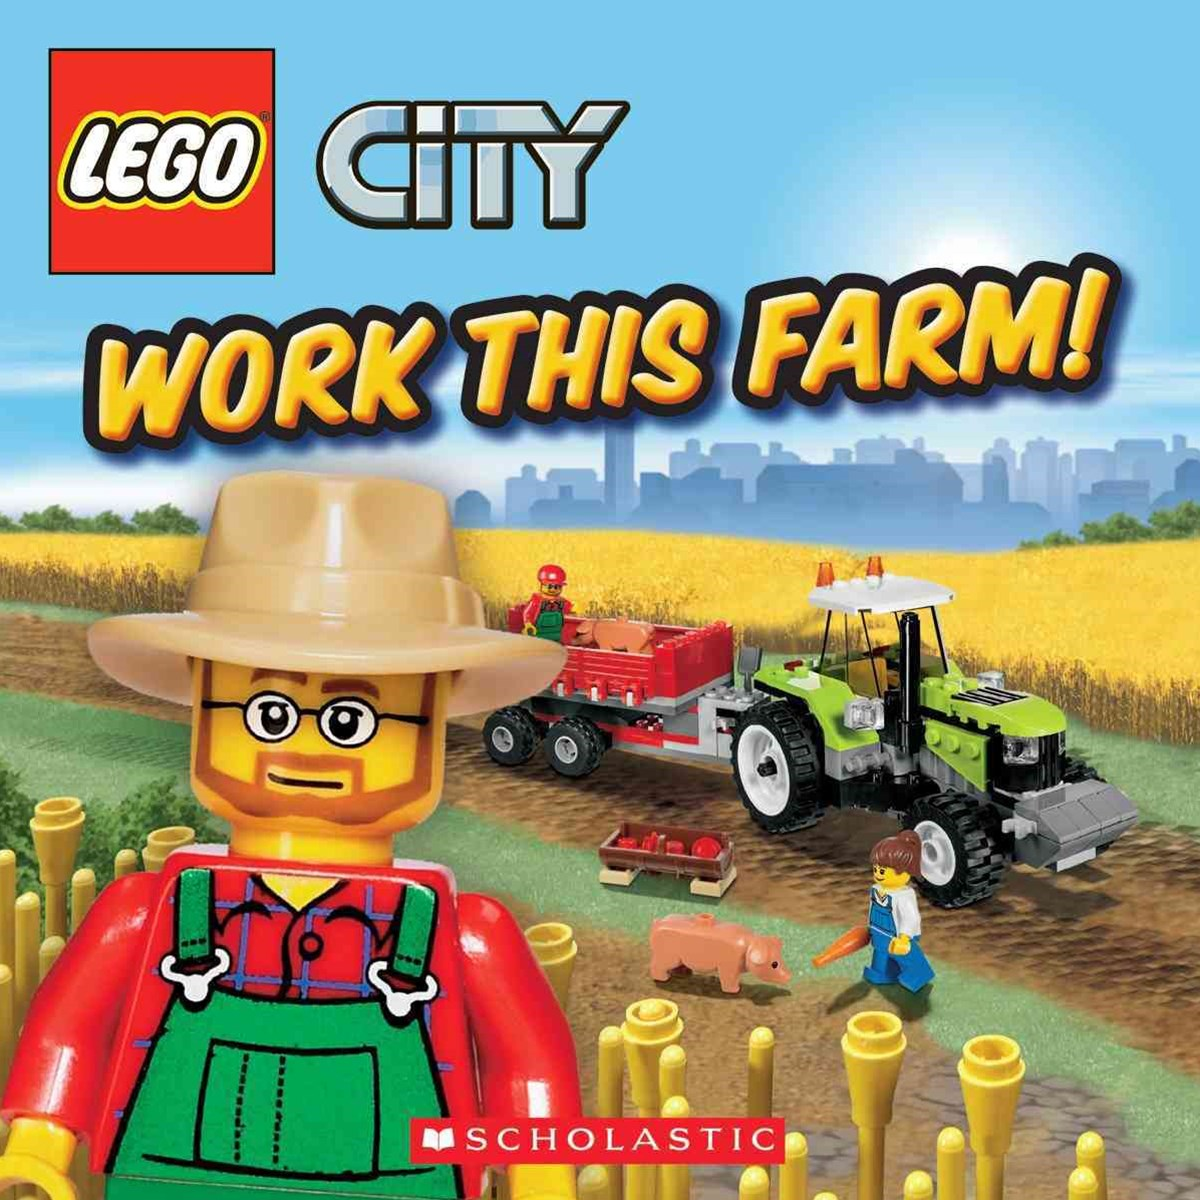 LEGO City: Work this Farm (8x8)